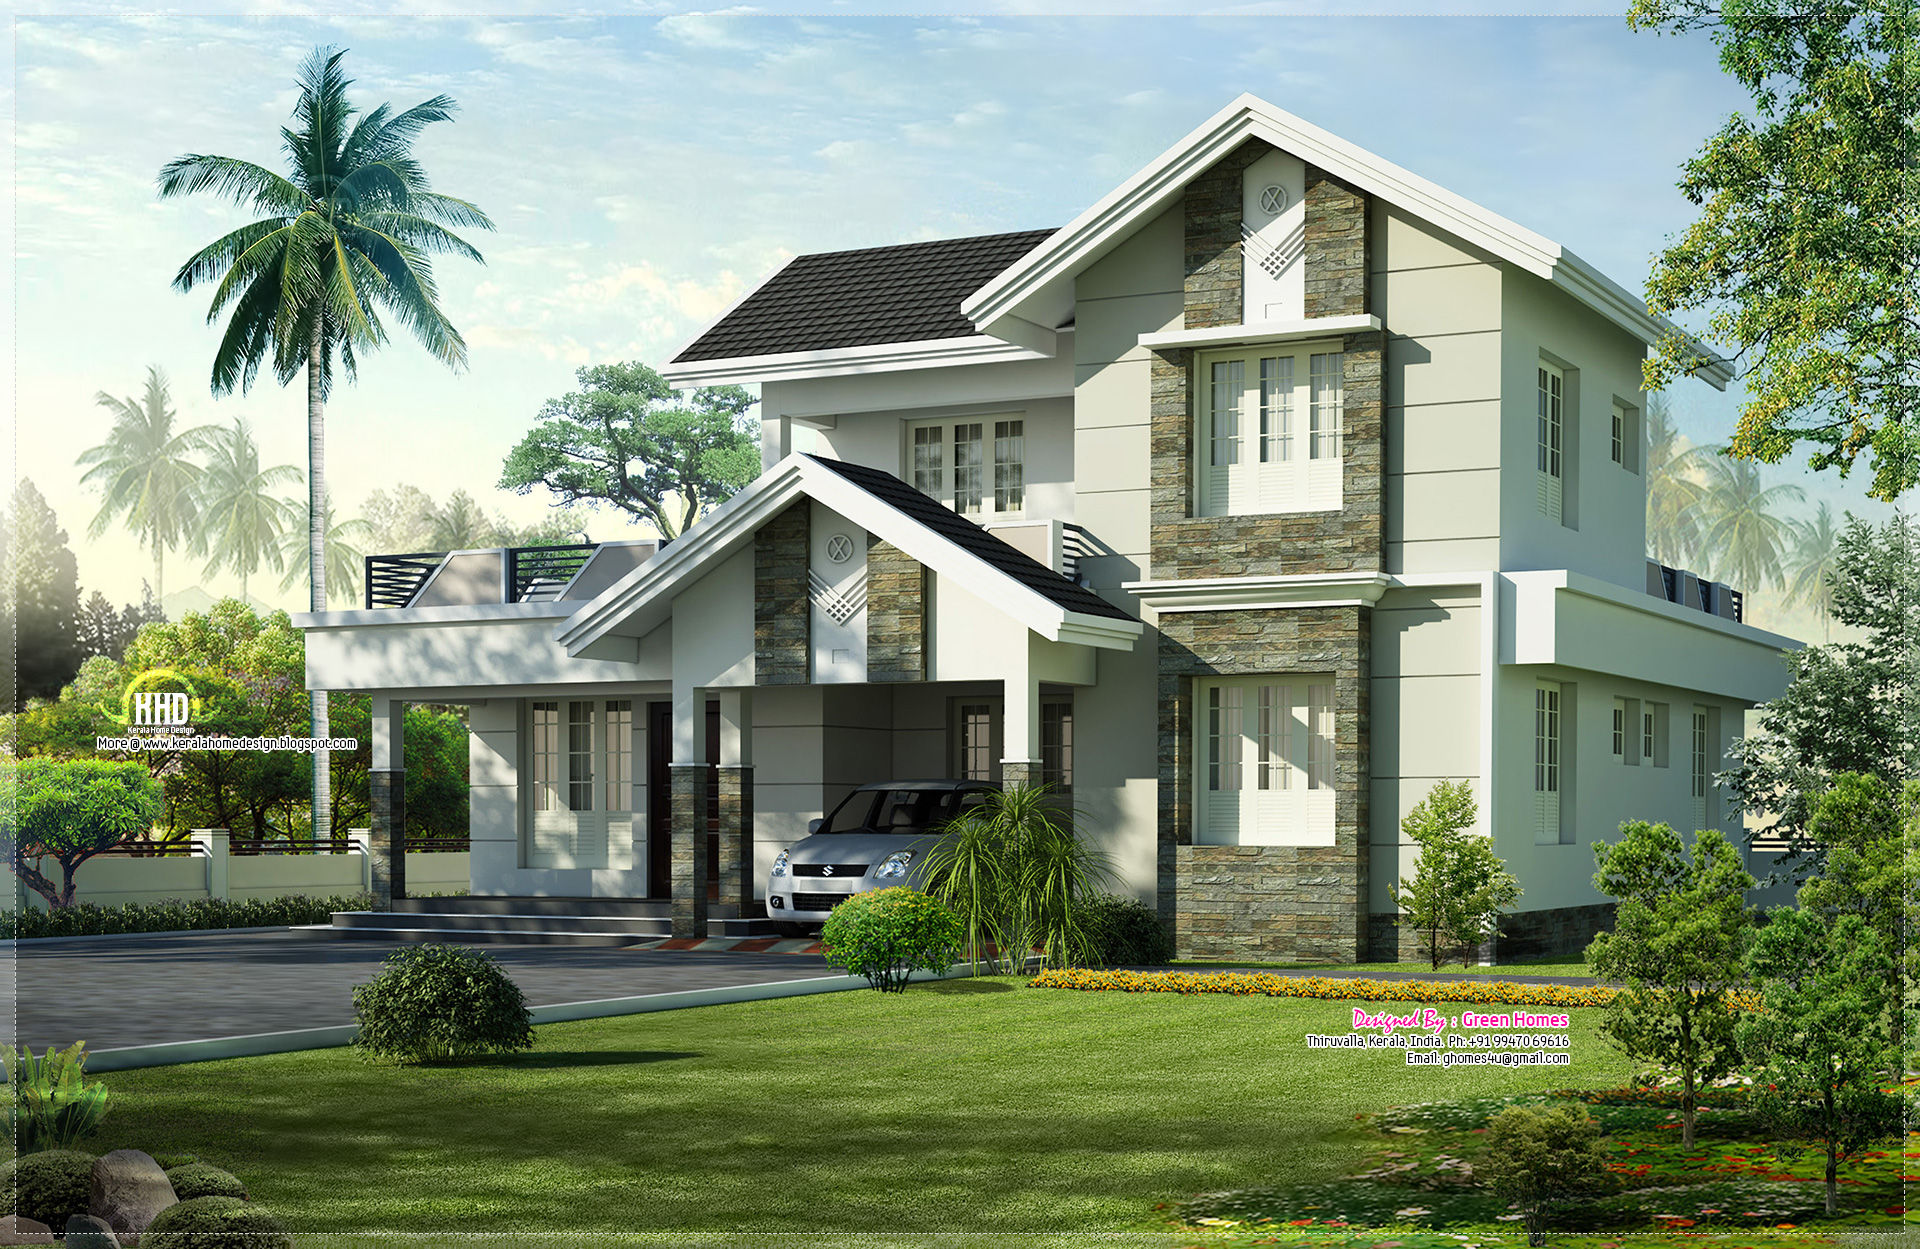 Designed Green Homes Thiruvalla Kerala Nice Home Elevation Jpg 1920x1249  Designs Green Kerala Outside Townhouse Picturesque